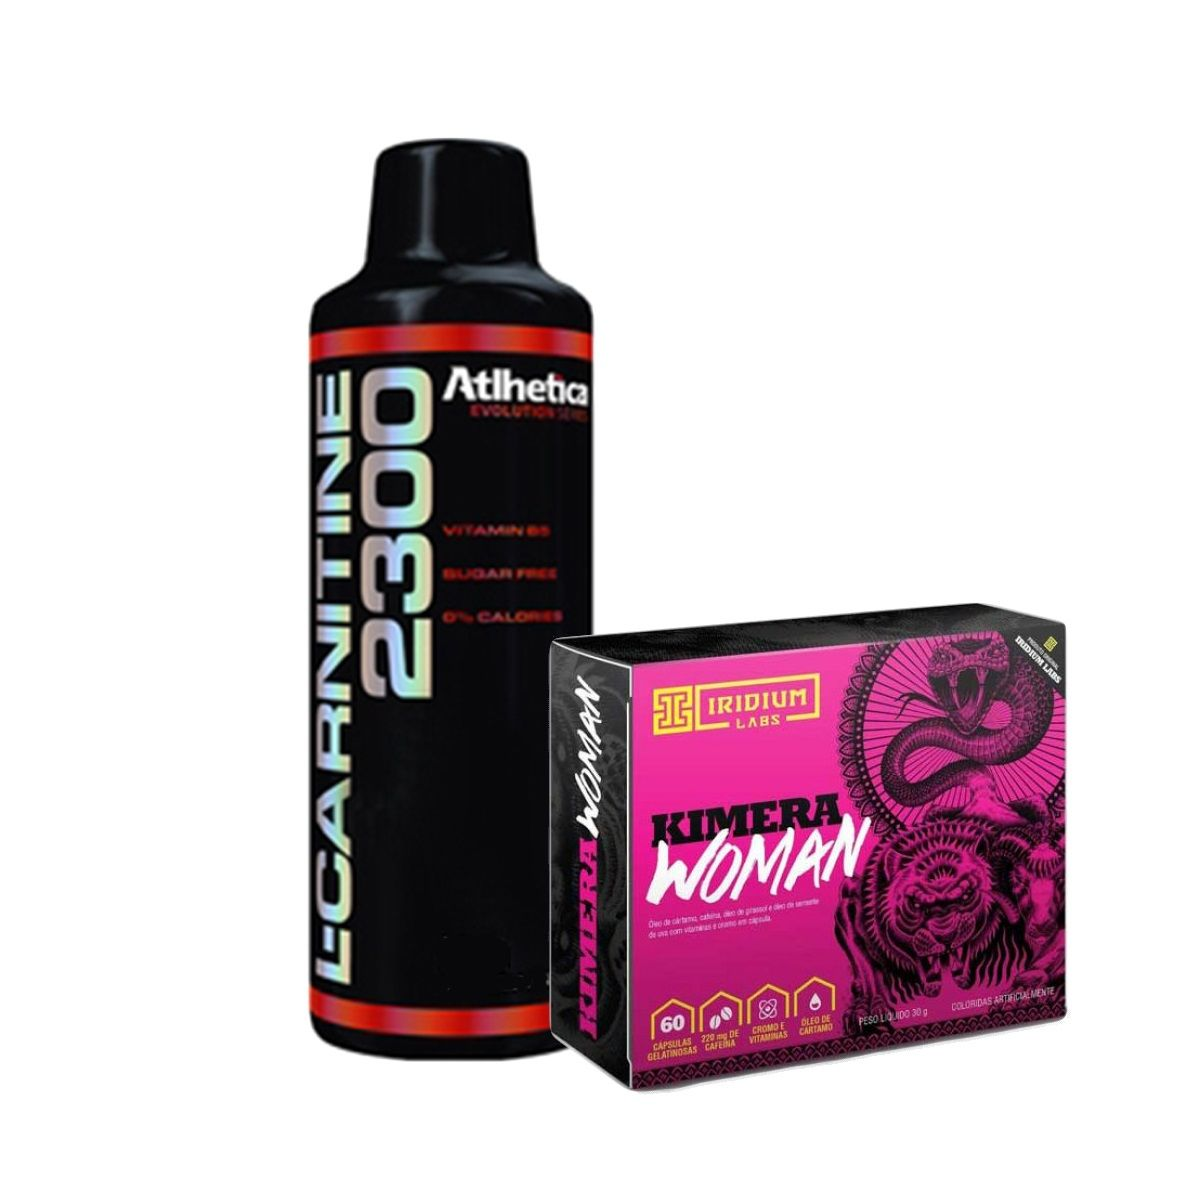 KIT SECA BARRIGA - KIMERA WOMAN + L CARNITINA 2300